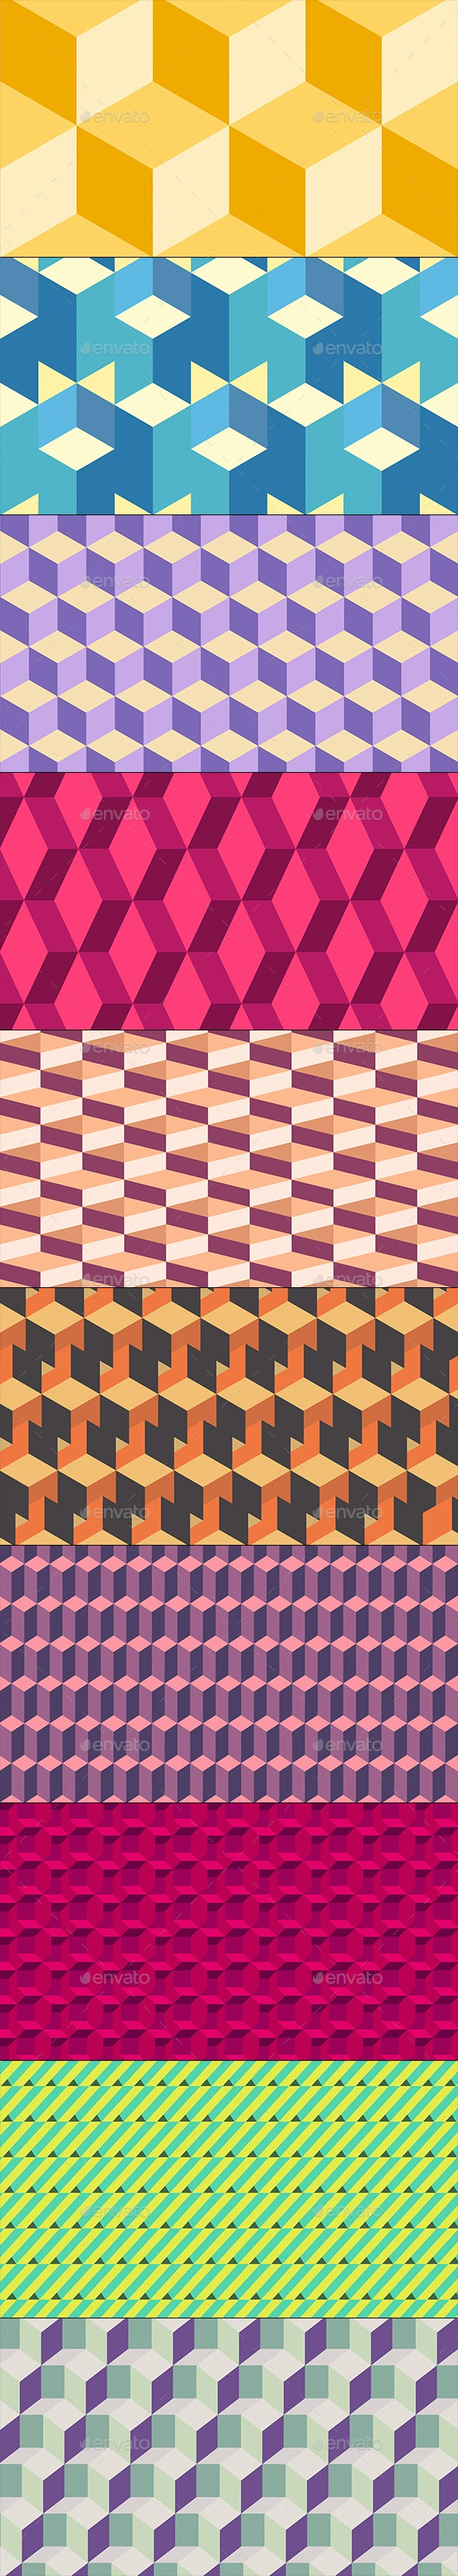 Isometric Background - Backgrounds Graphics